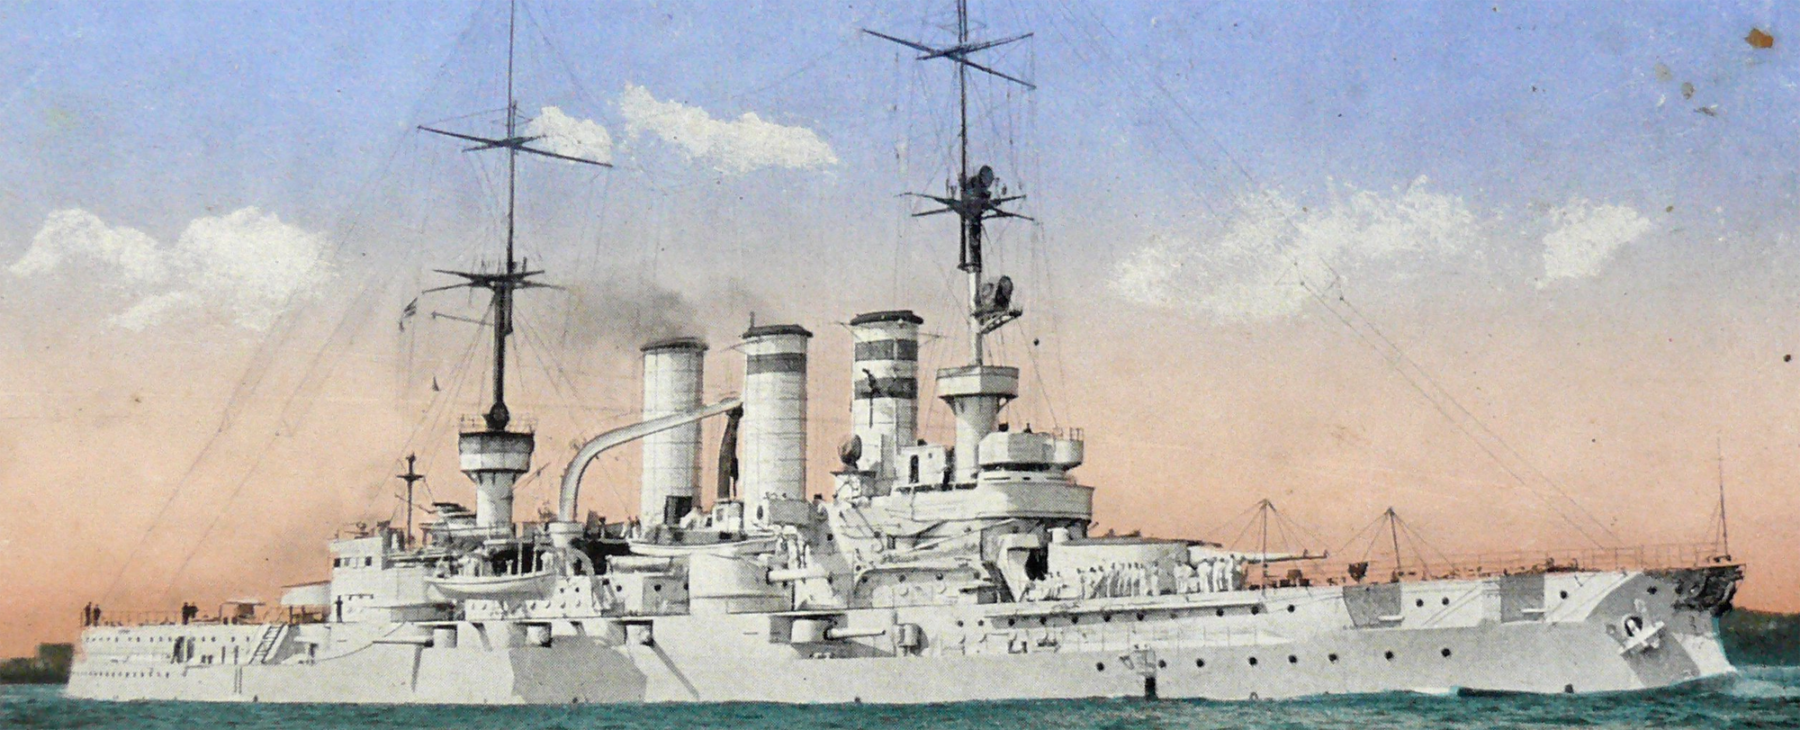 HD illustration of the SMS Essen